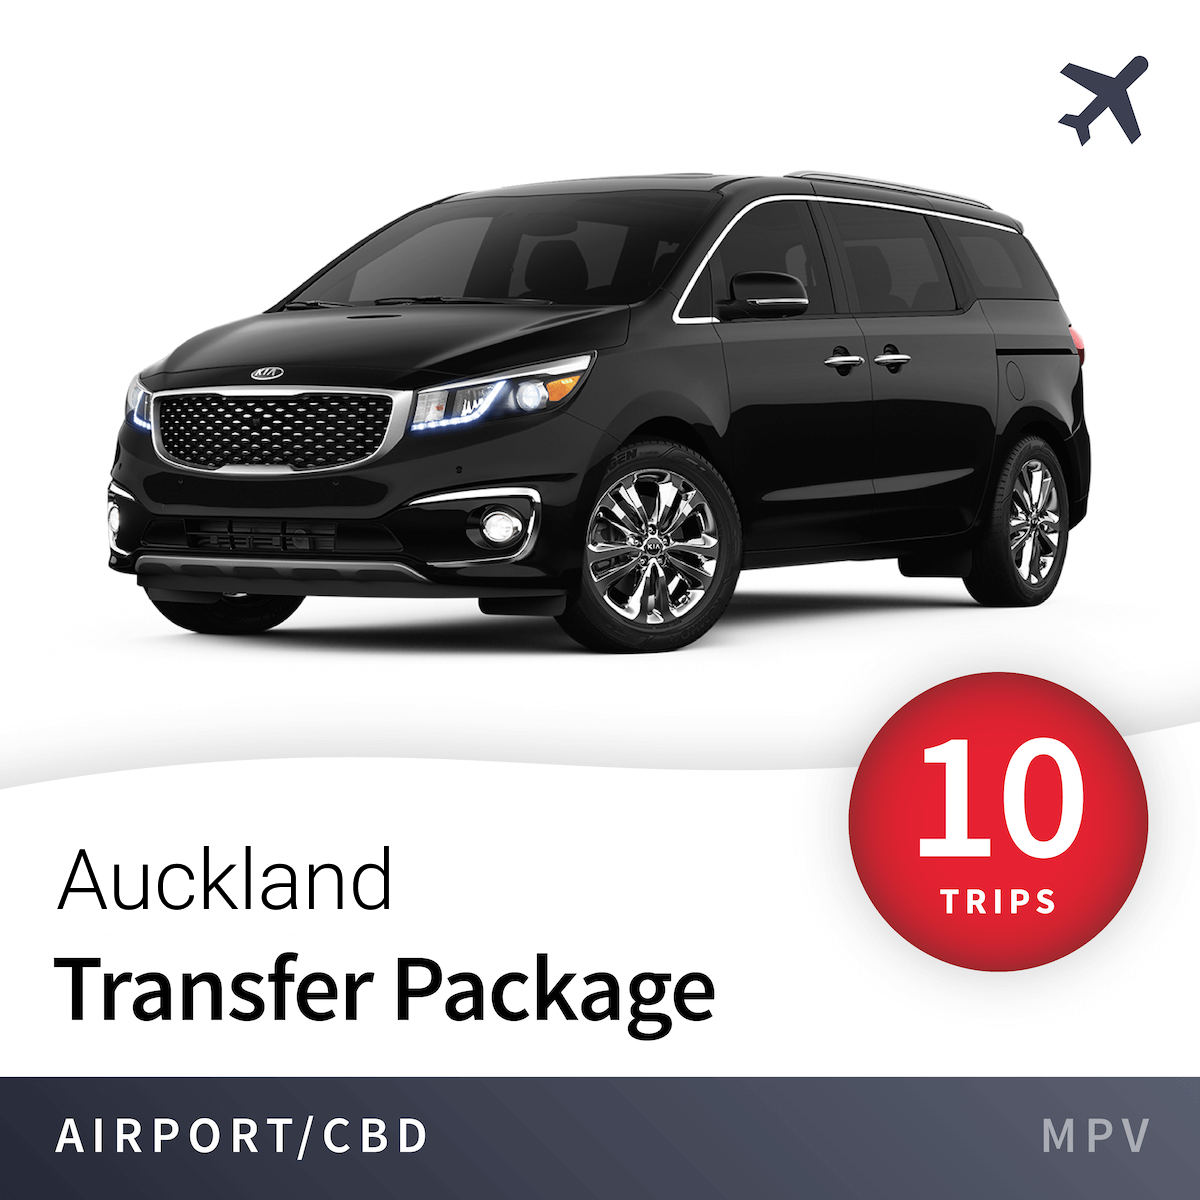 Auckland Airport Transfer Package – MPV (10 Trips) 1